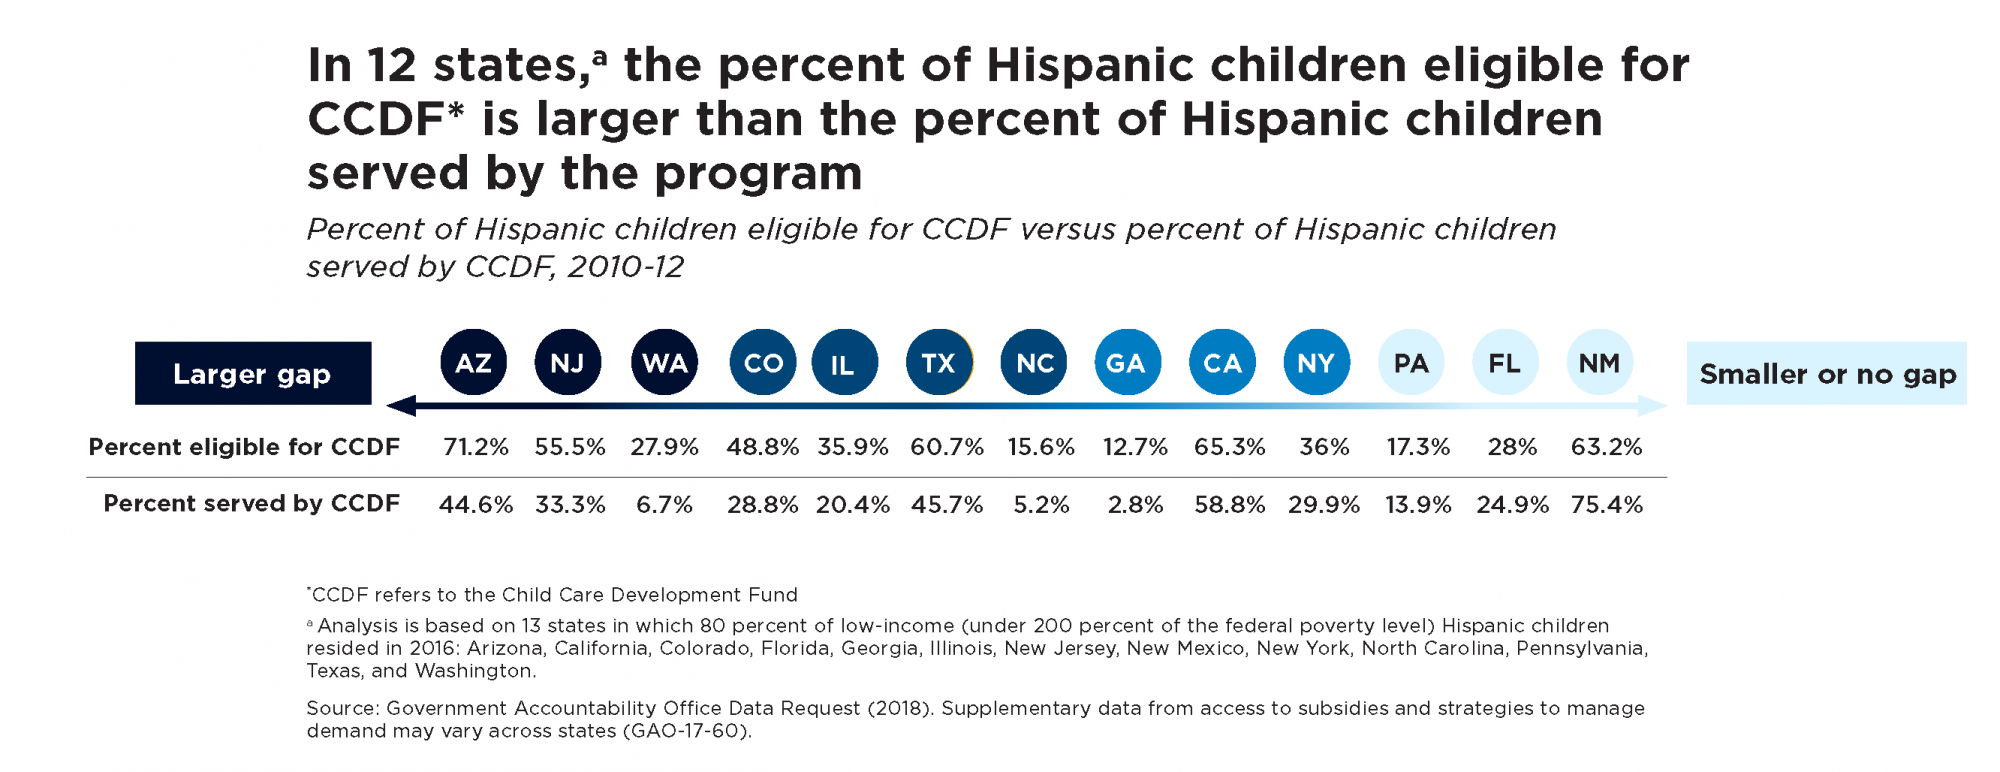 In 12 states, the percent of Hispanic children eligible for CCDF is larger than the percent of Hispanic children served by the program